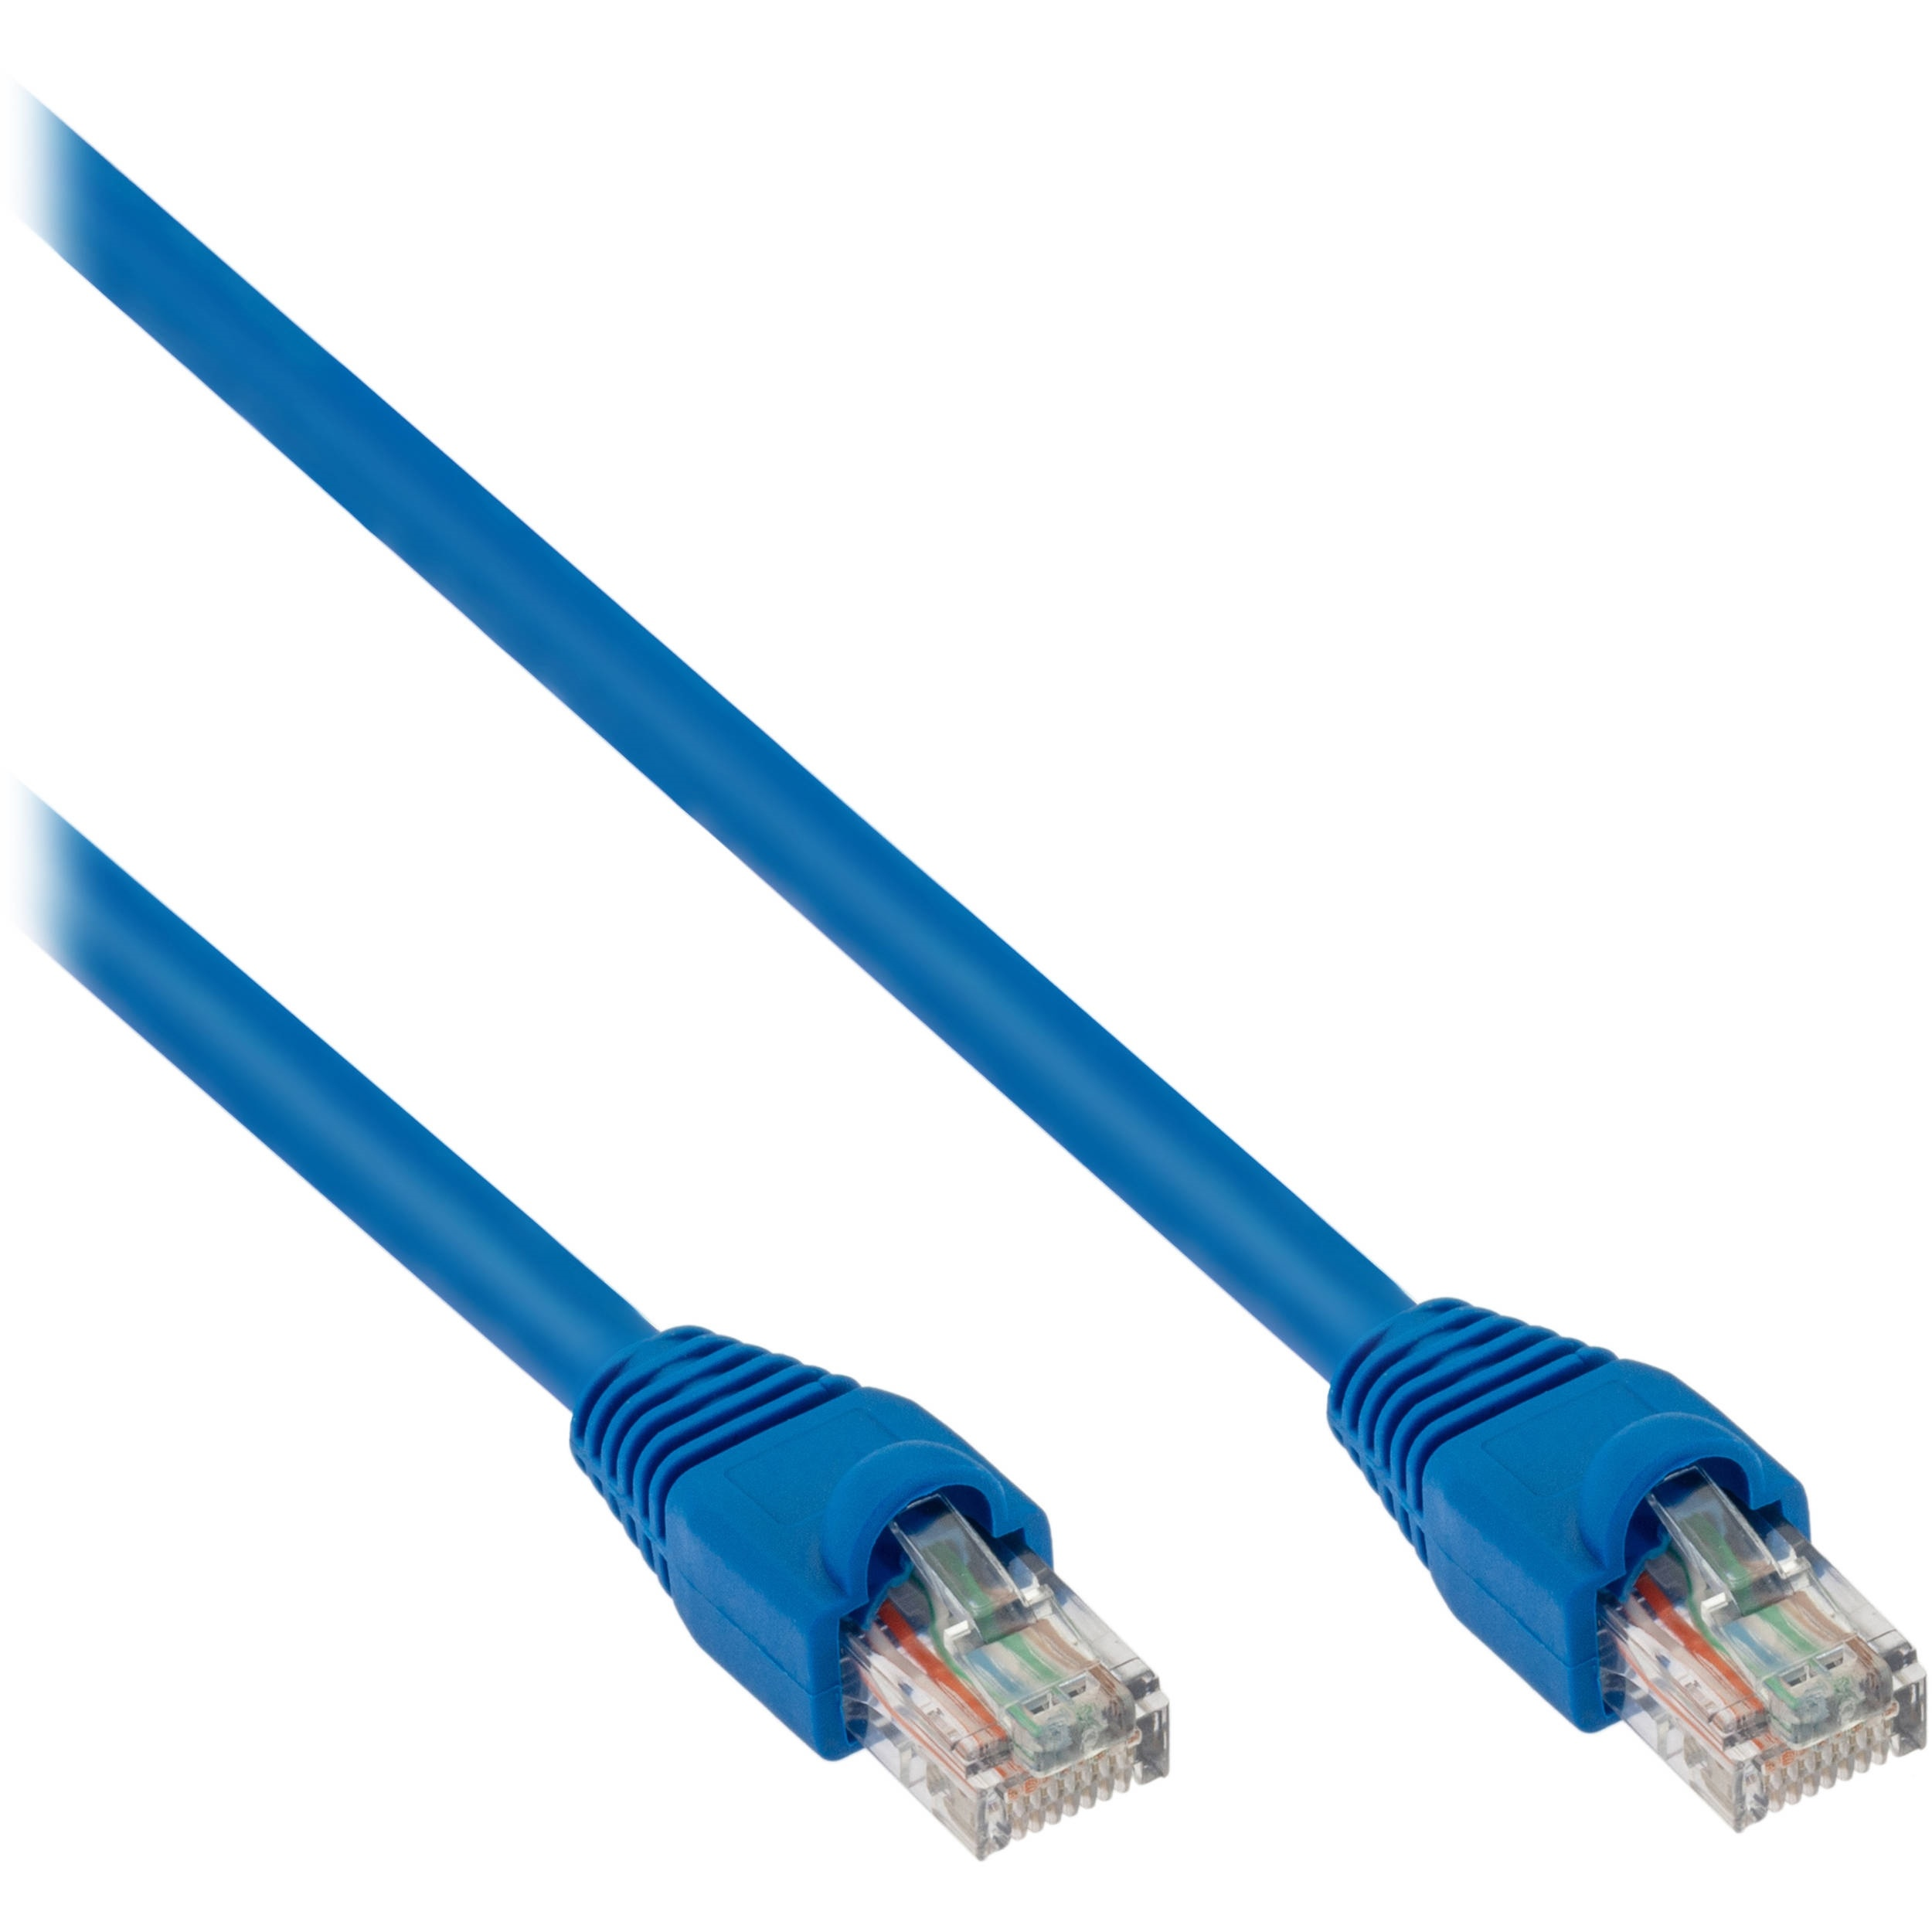 Pearstone Cat 6a Snagless Patch Cable (50', Blue)